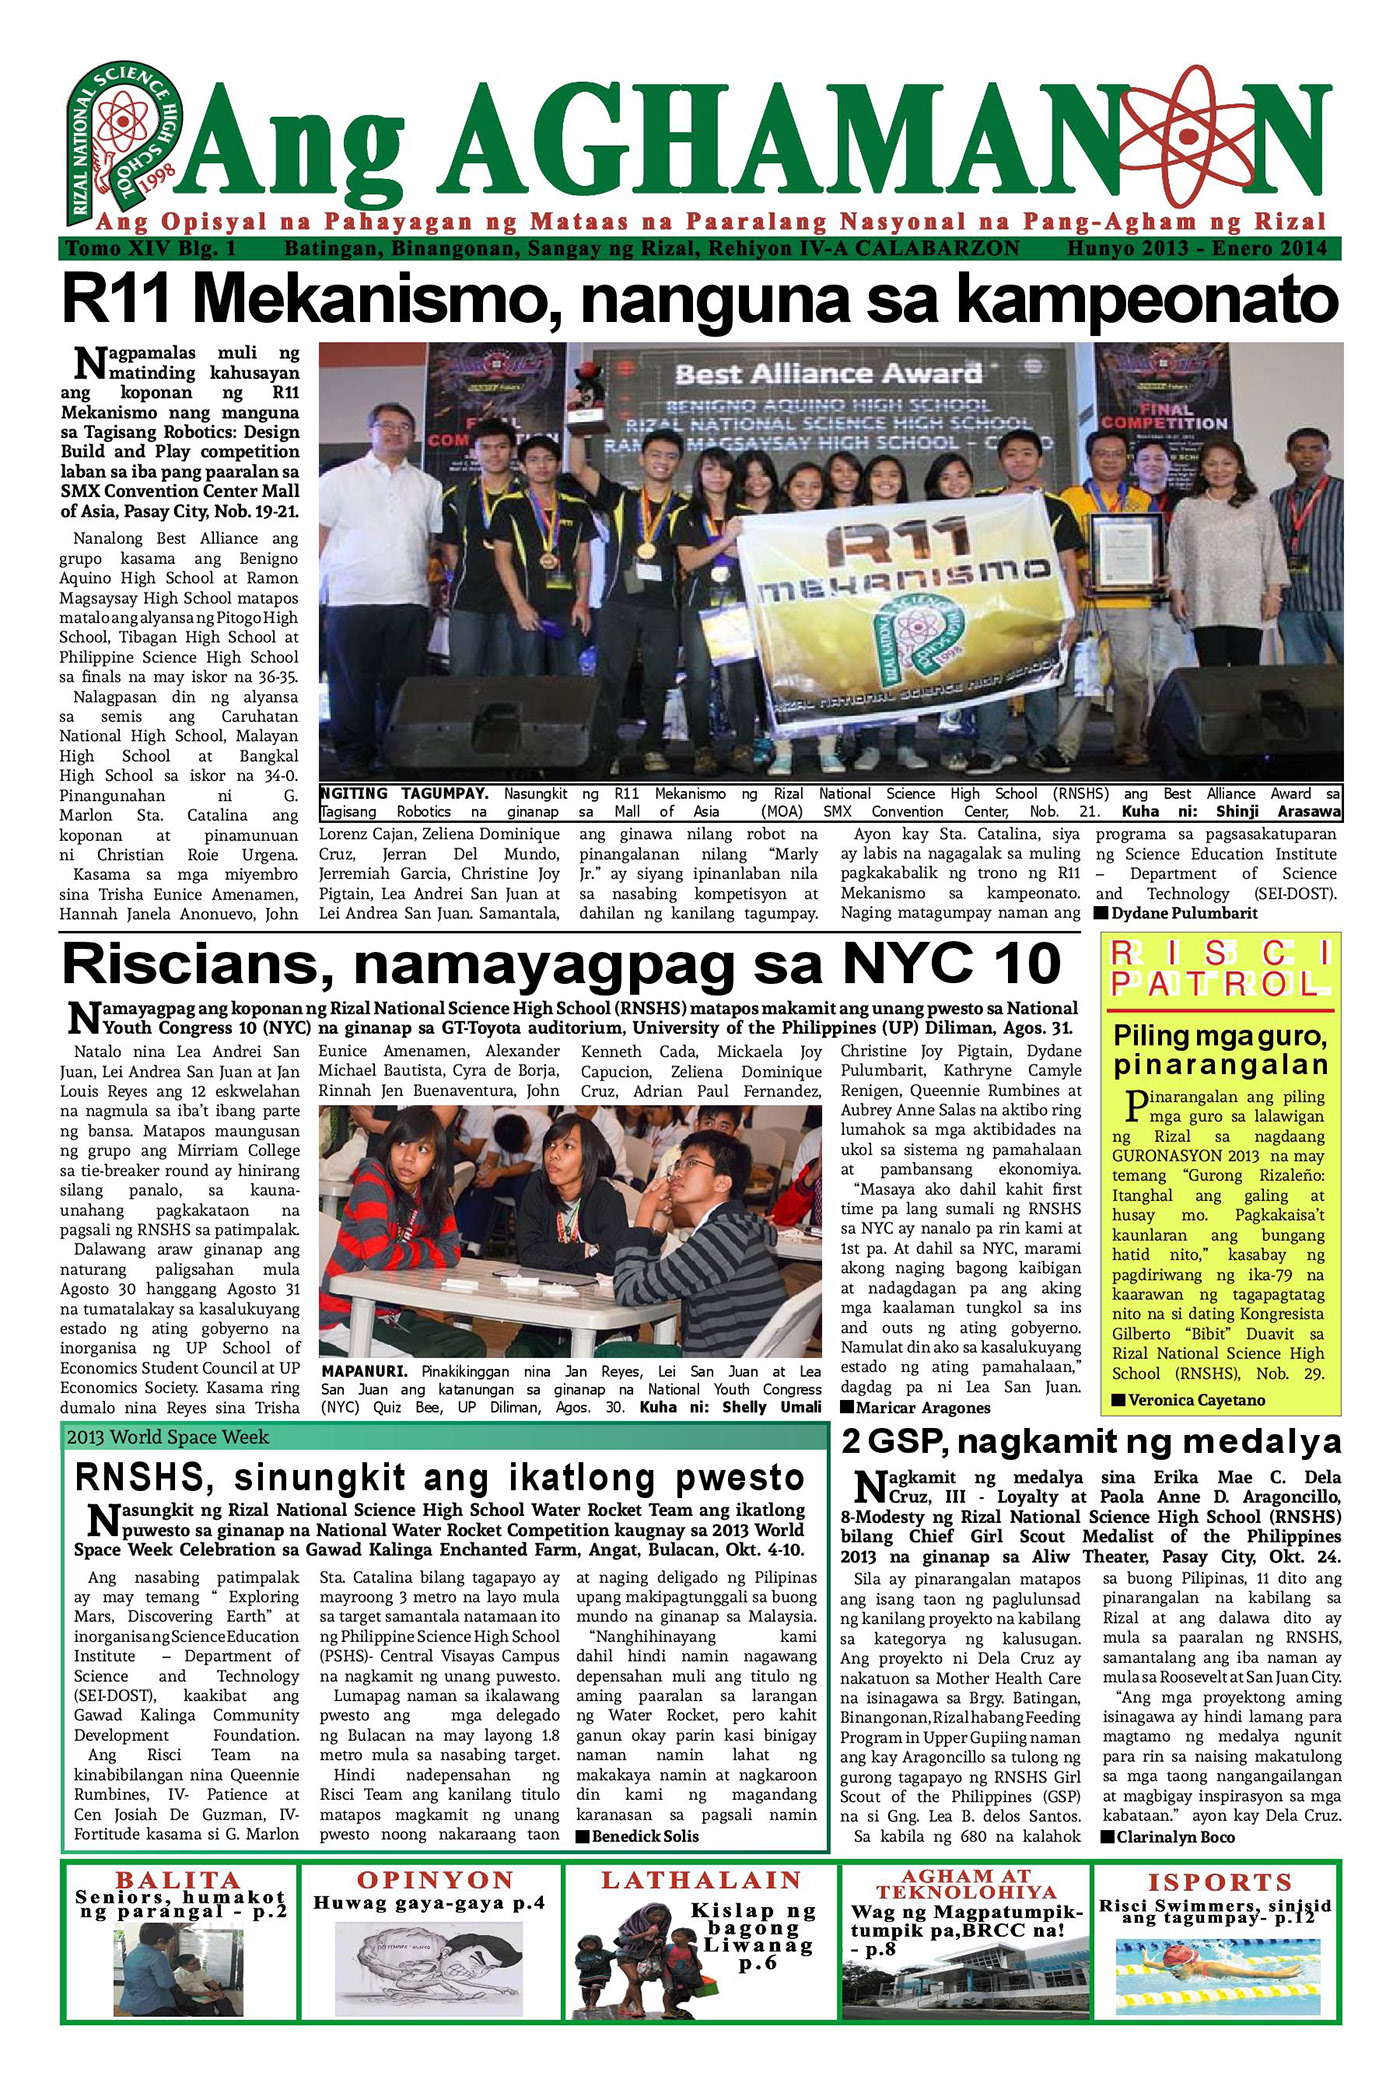 Ang Aghamanon Newspaper Layout 2014 - RNSHS on Behance